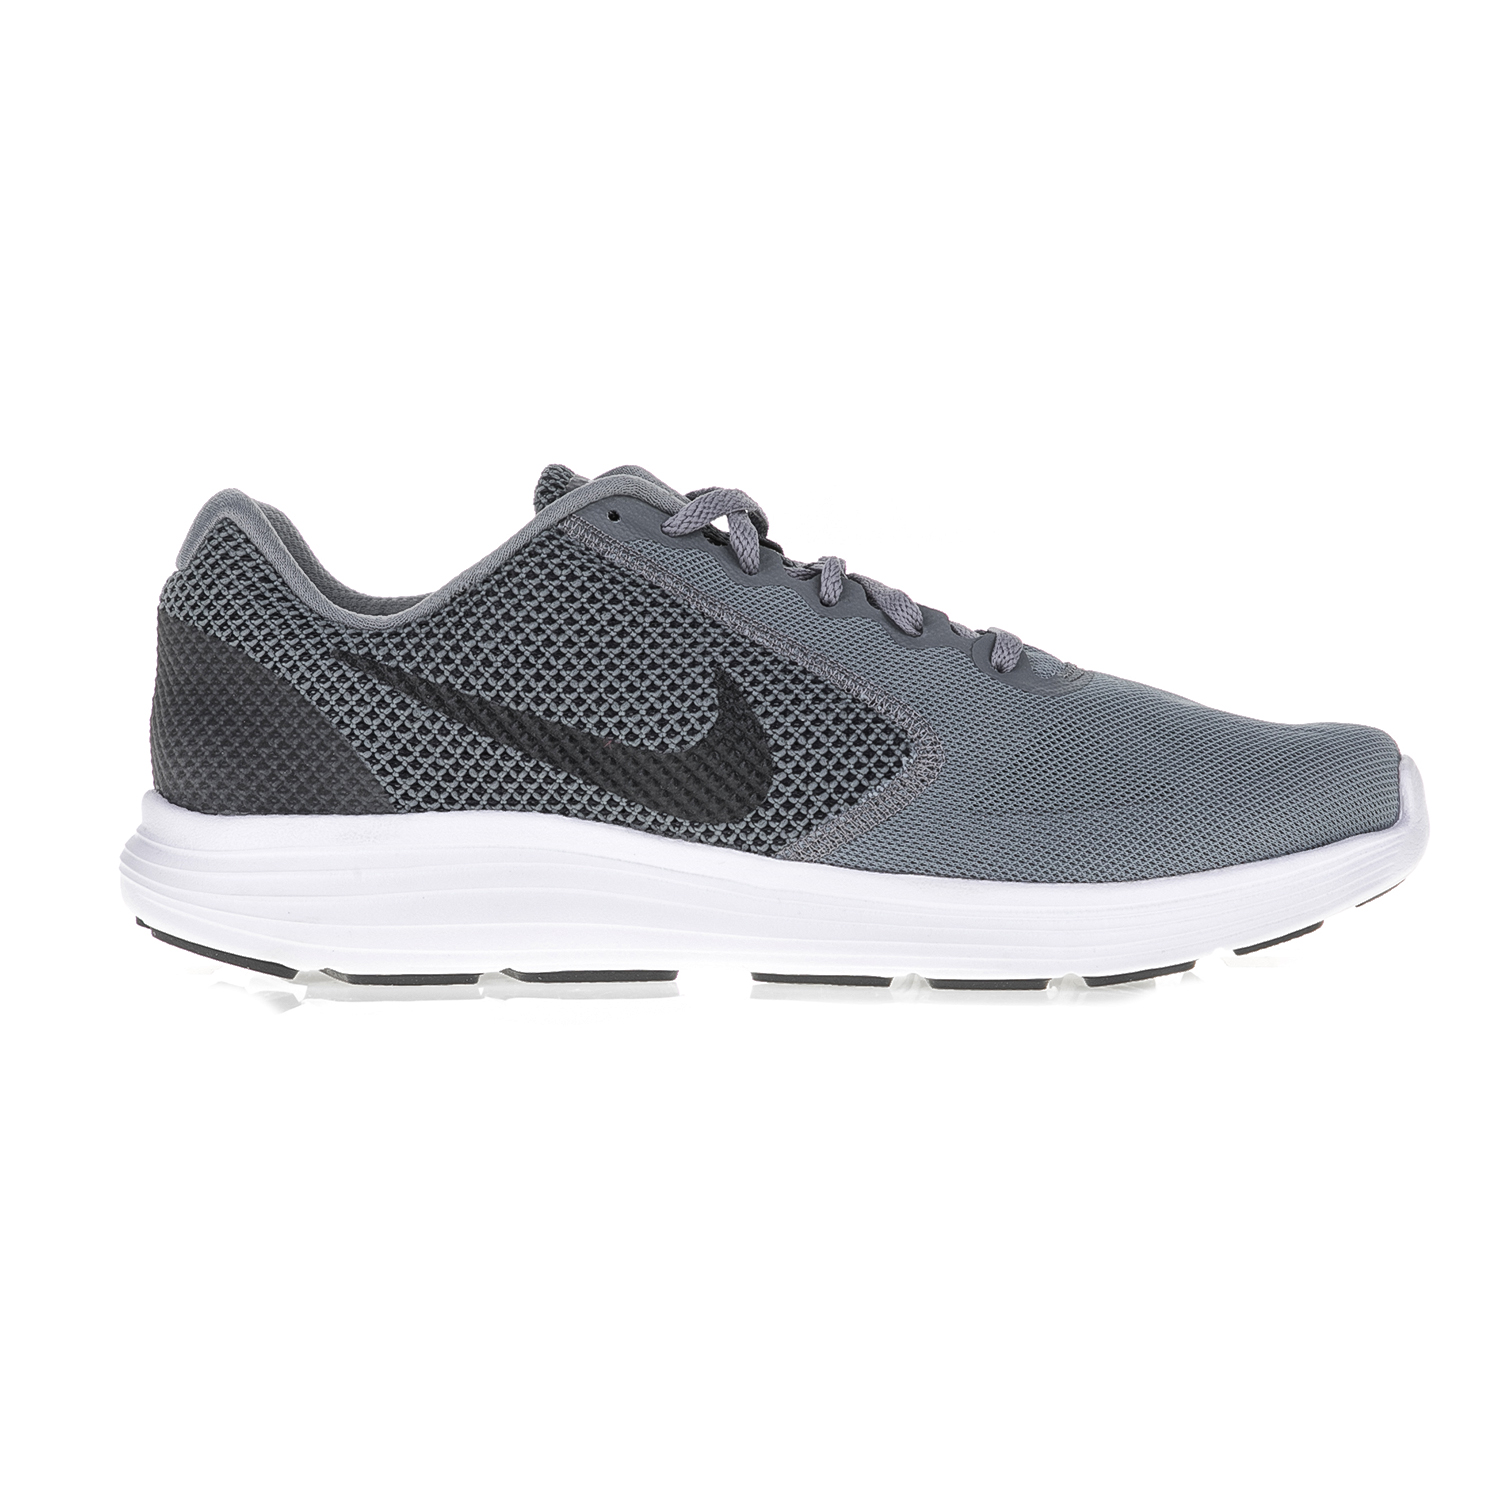 7a986859dbb NIKE – Ανδρικά αθλητικά παπούτσια NIKE REVOLUTION 3 γκρι-λευκά.  Factoryoutlet